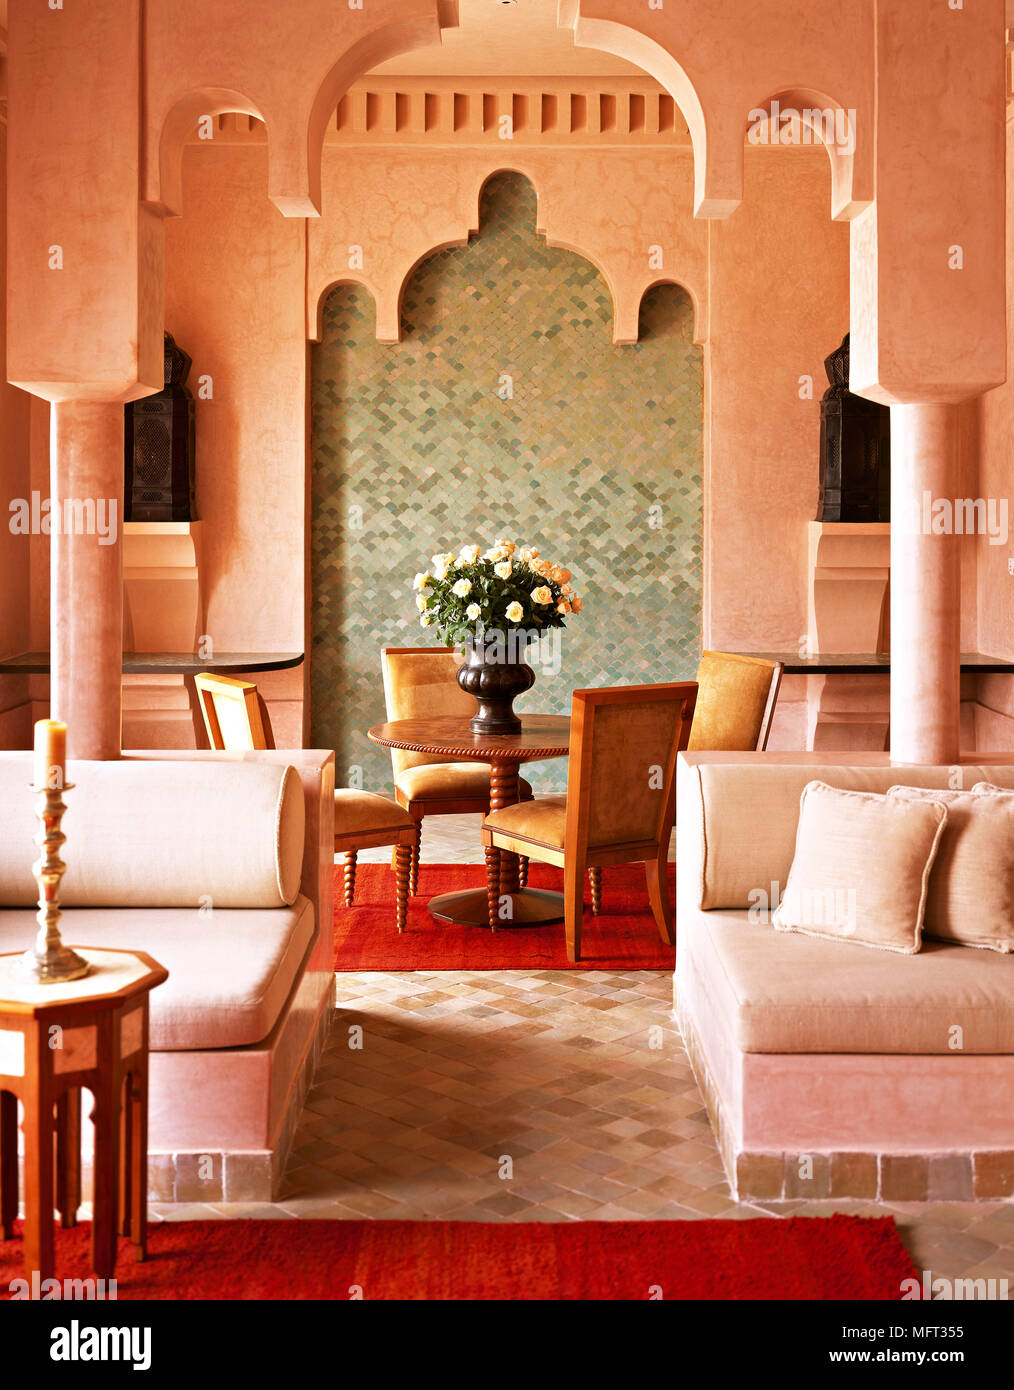 Moroccan Terracotta Sitting Room Dining Area High Arched Ceiling Seating Areas Interiors Rooms Ethnic Influence Warm Colours Arabian Moorish Archirec Stock Photo Alamy